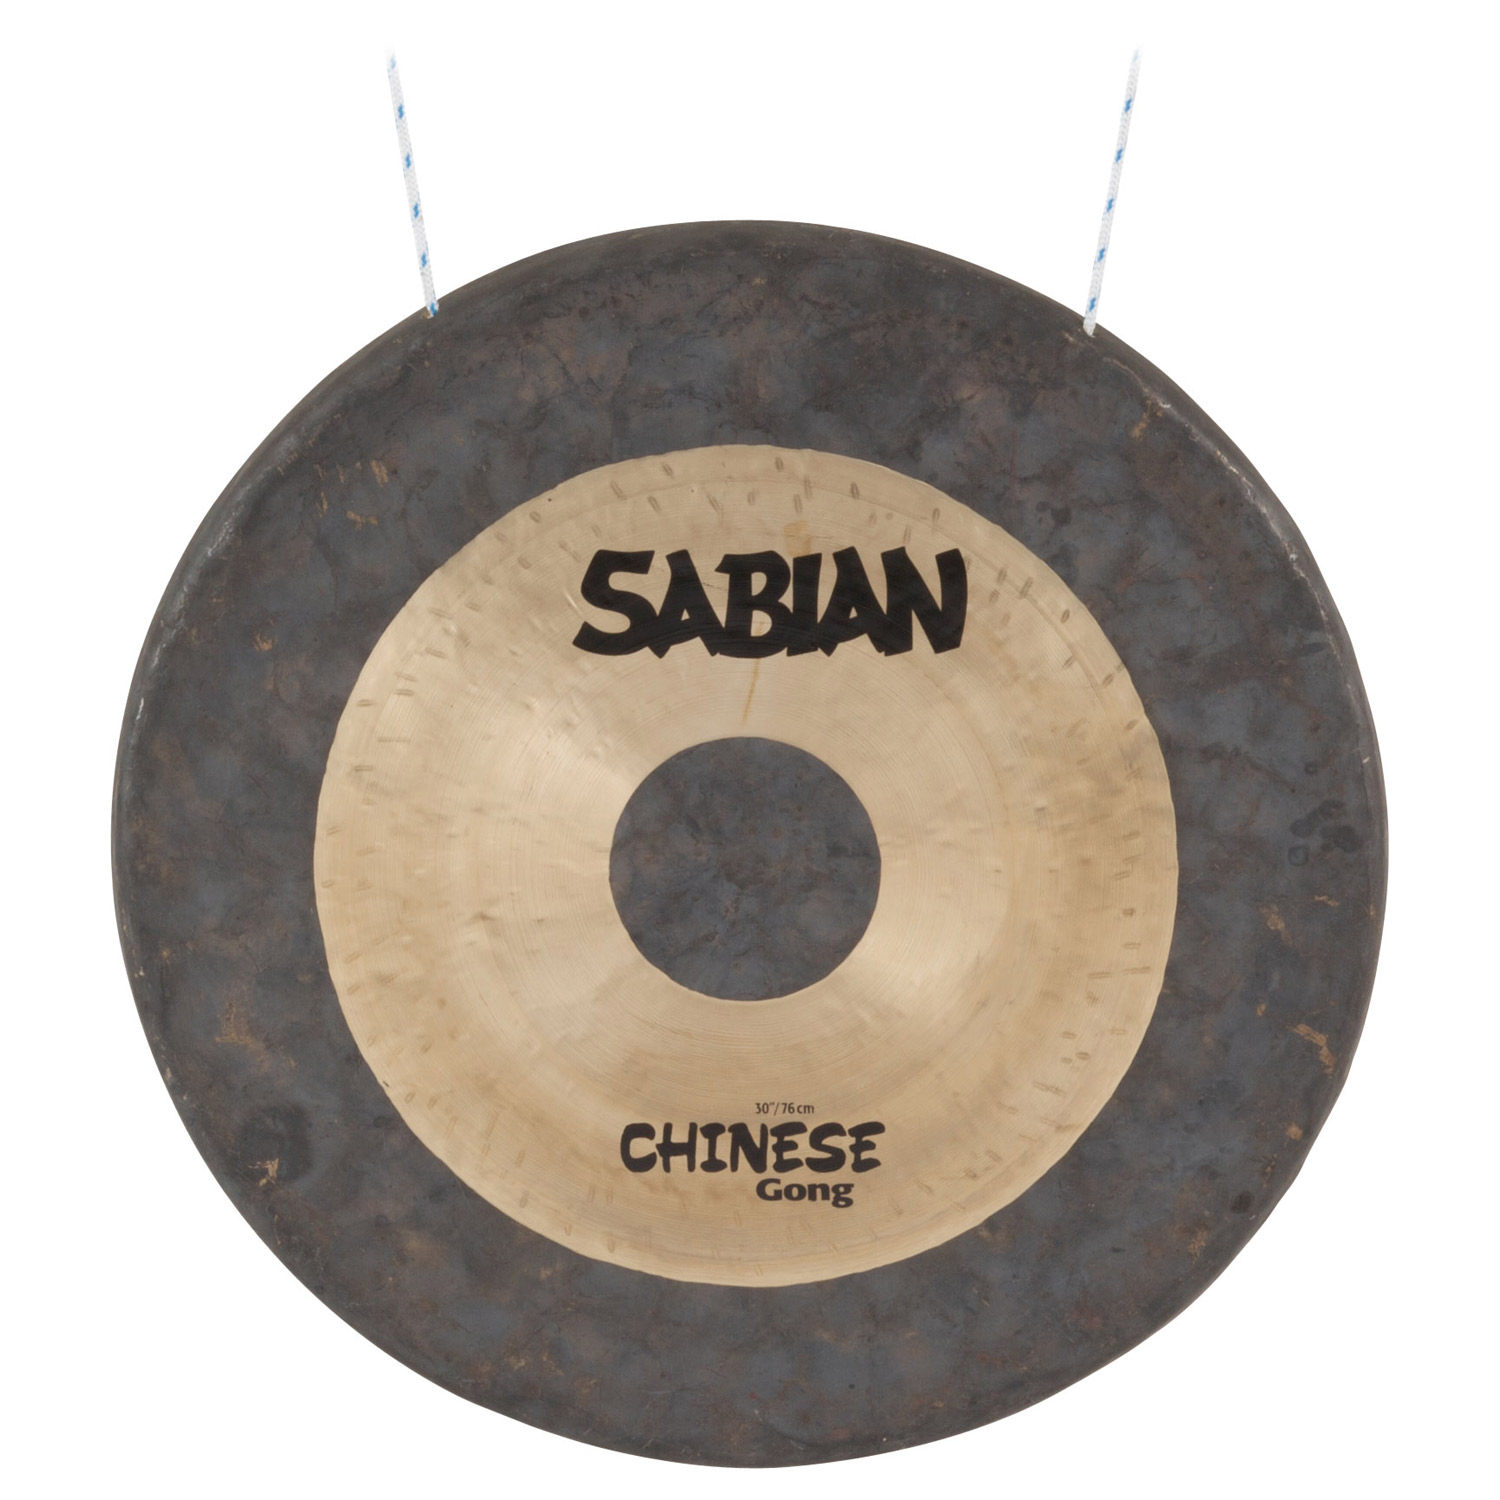 Sabian 53001 30-Inch Chinese Gong Percussion by Sabian